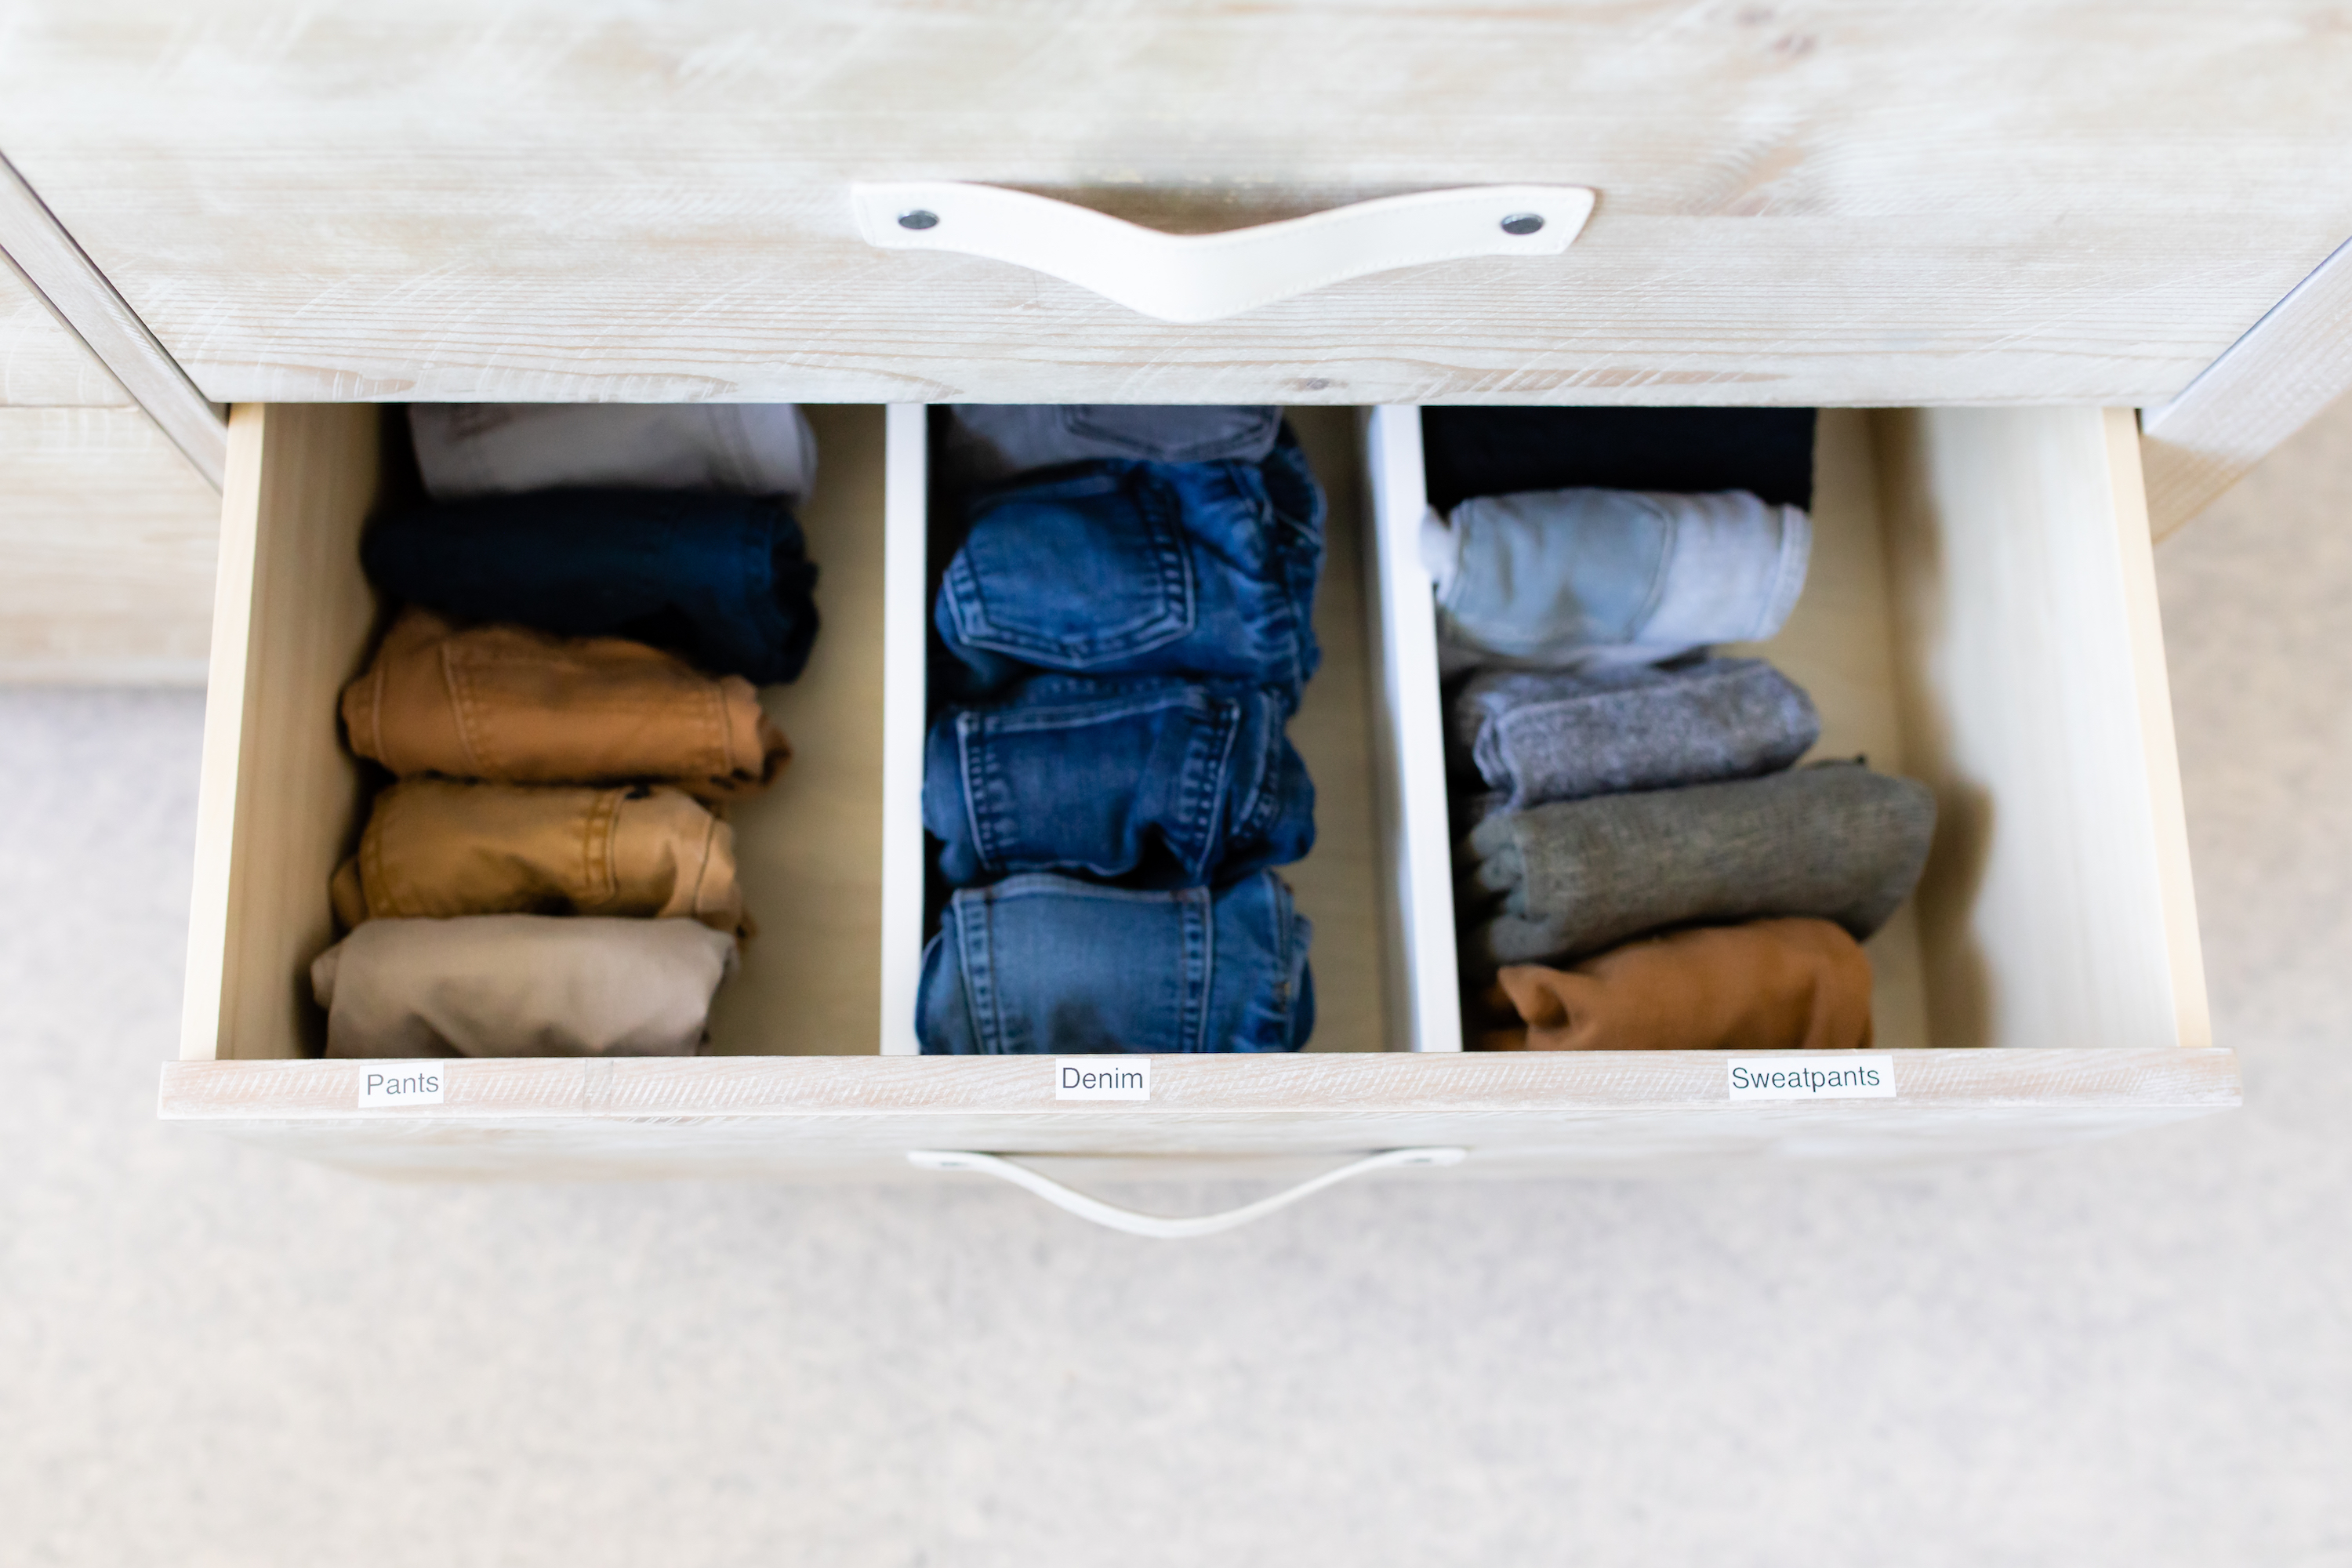 Bedroom drawers organized by color.